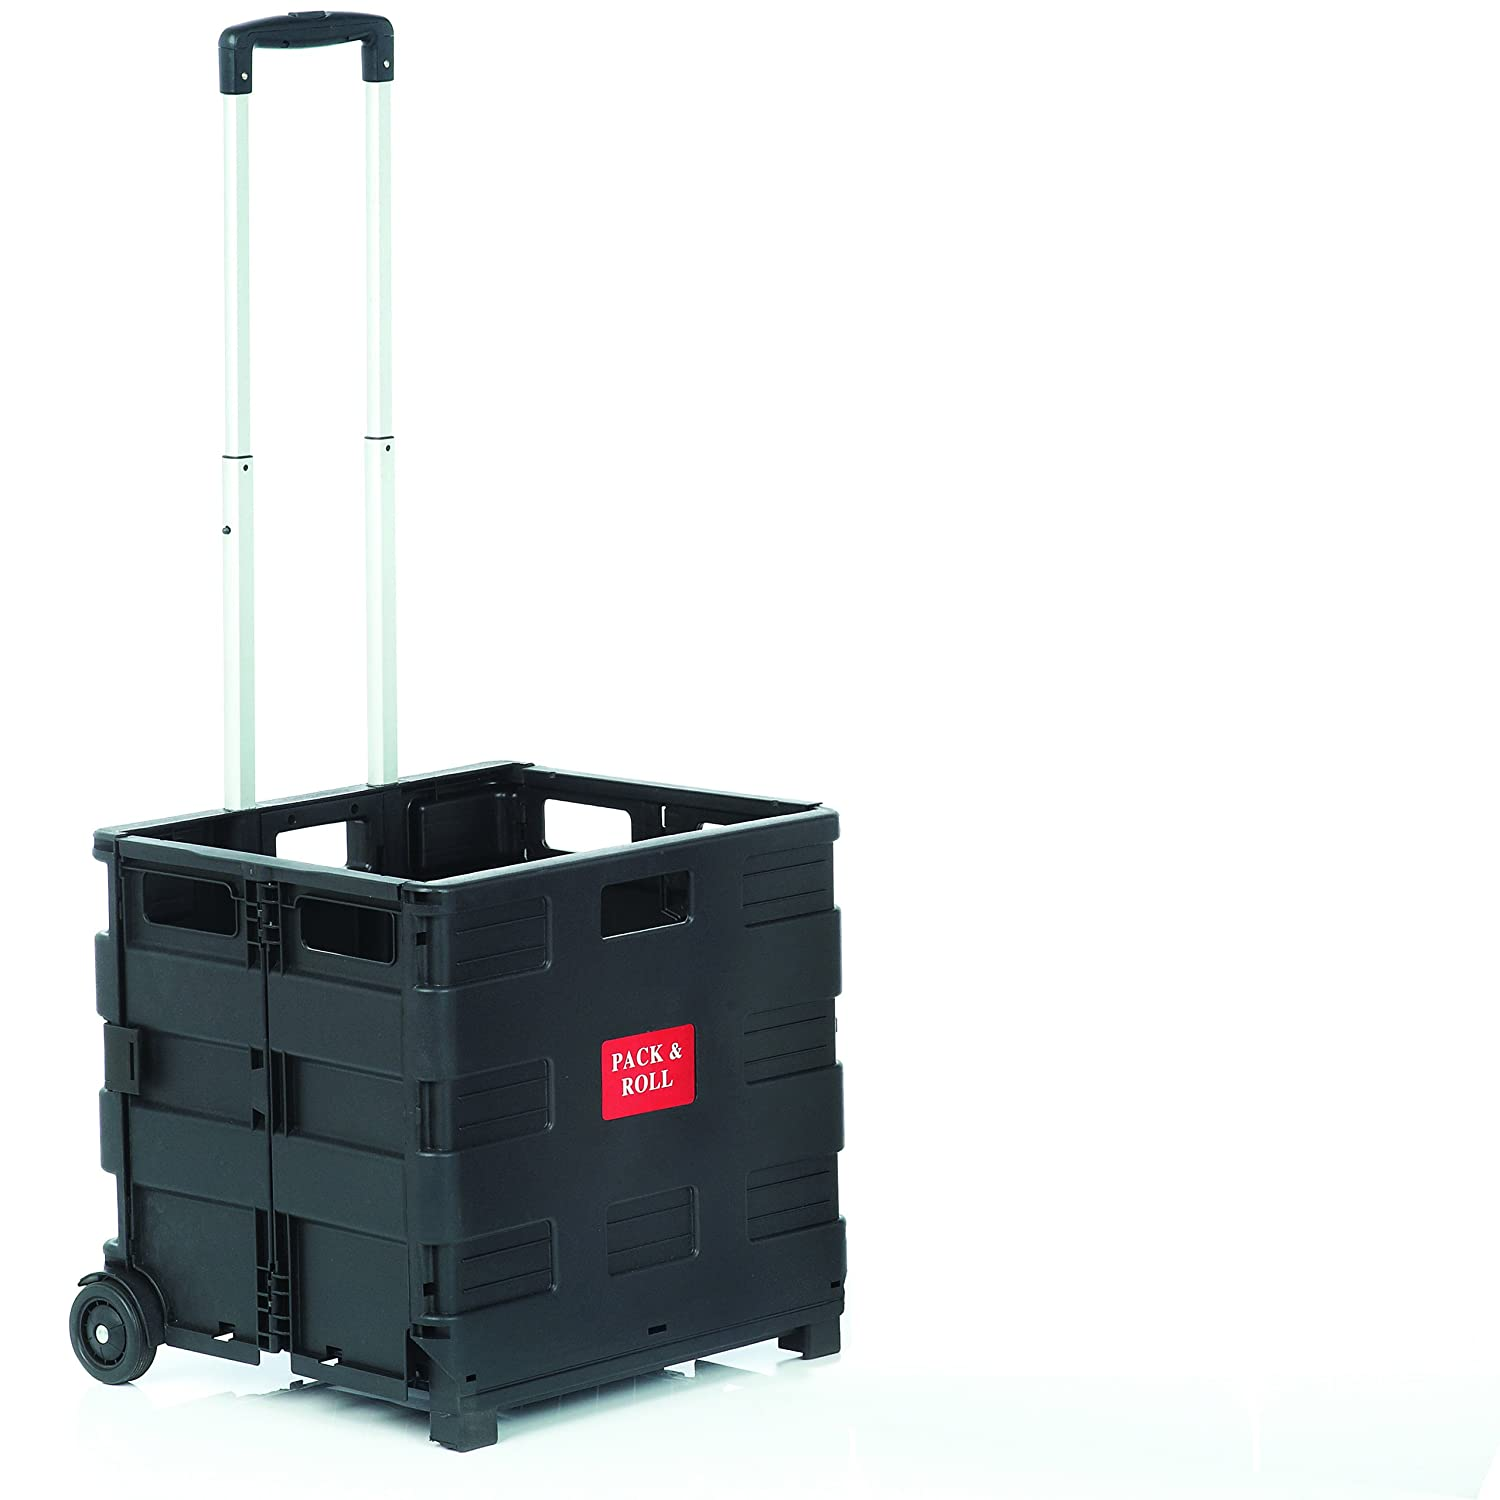 Seco, ZY-LC-BK - Large Collapsible Trolley, Utility Wagon, in Black, Made From PP Material, with A 35Kg Weight Capacity, Overall Size 420 x 405 x 380 mm Stewart Superior YZ8037